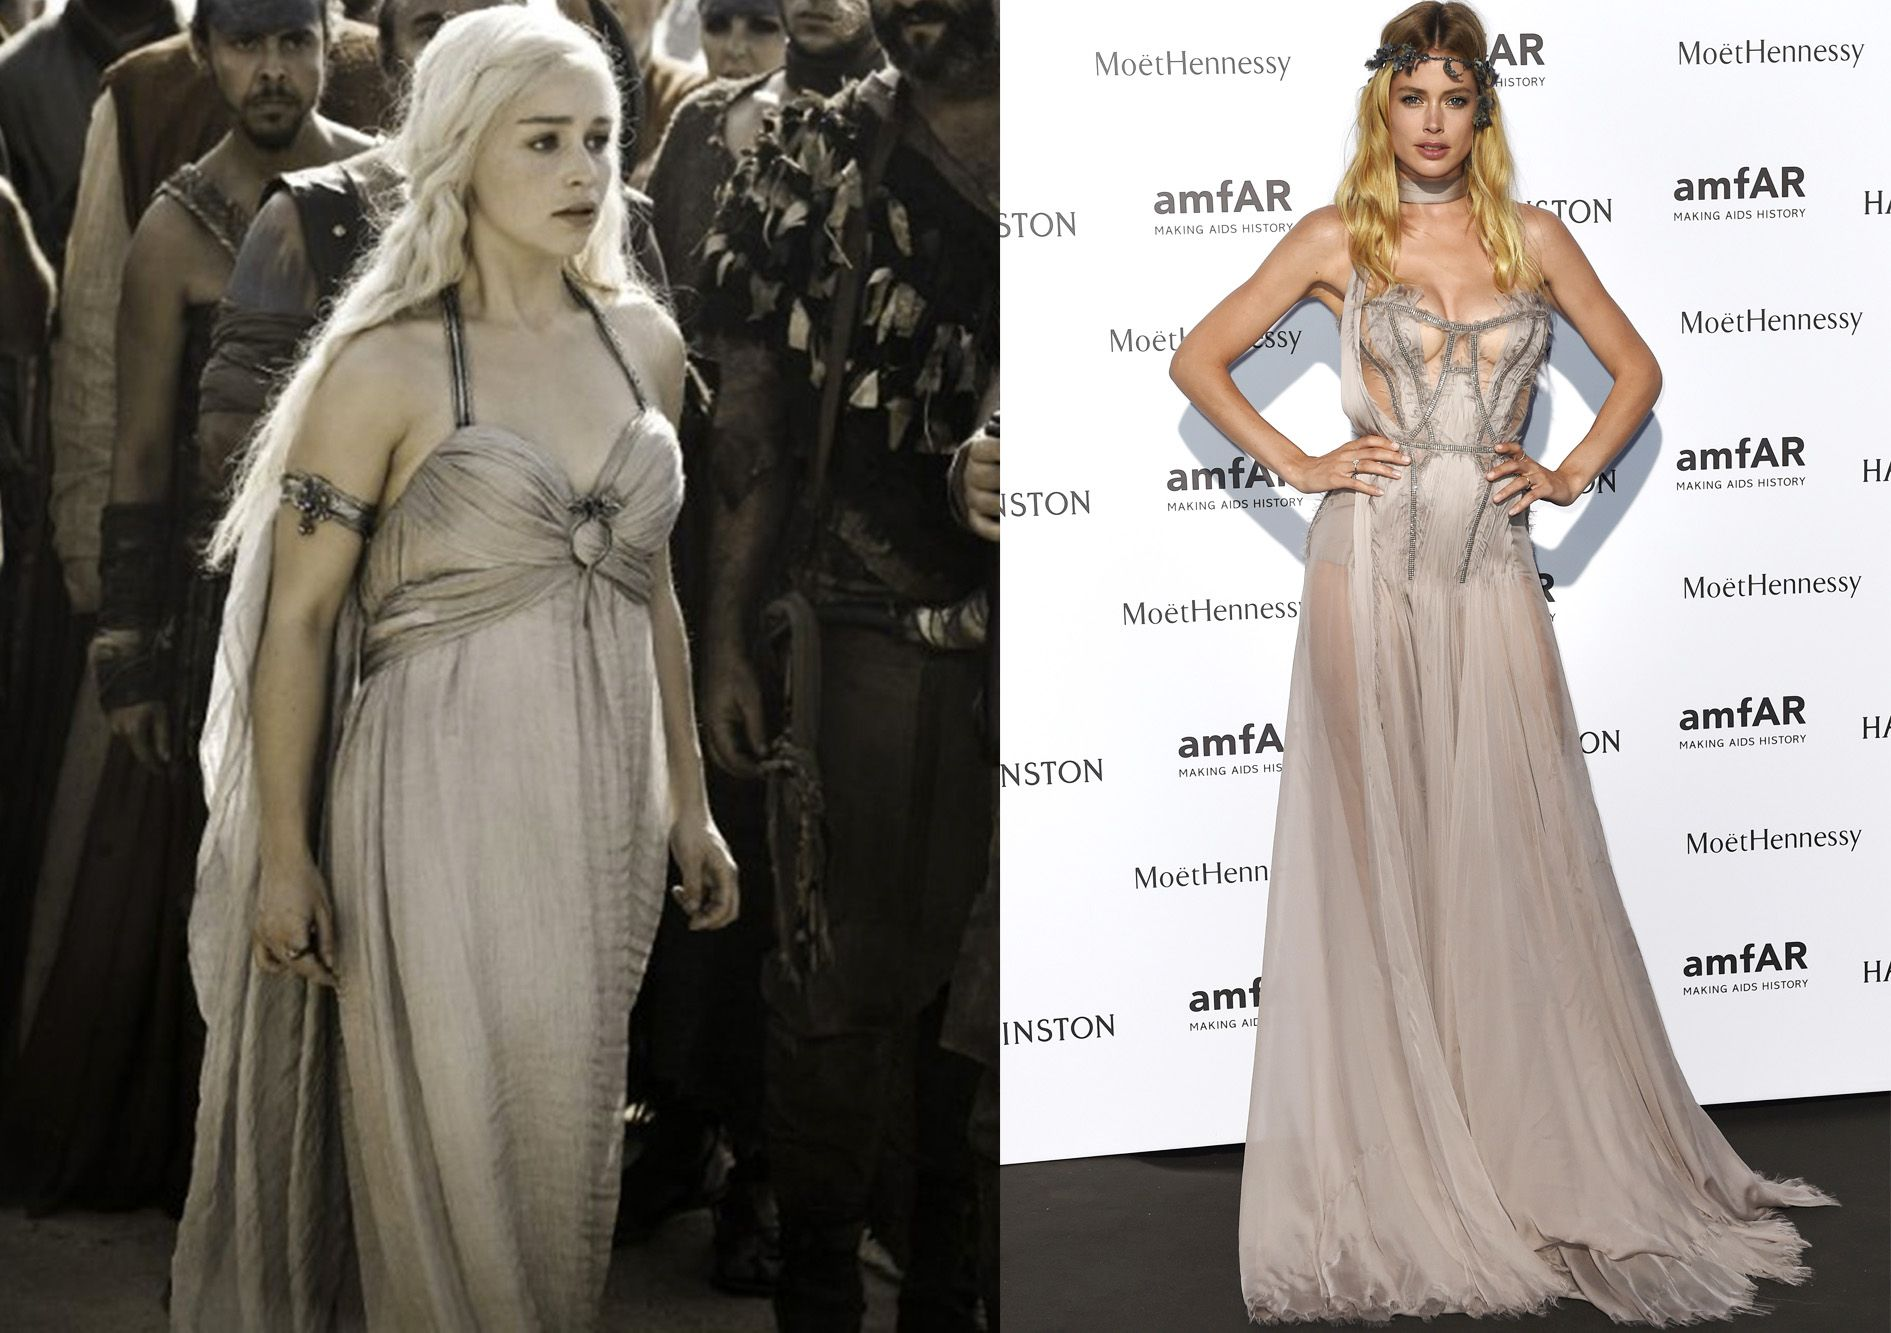 13 Game Of Thrones Inspired Looks On The Red Carpet 13 Times